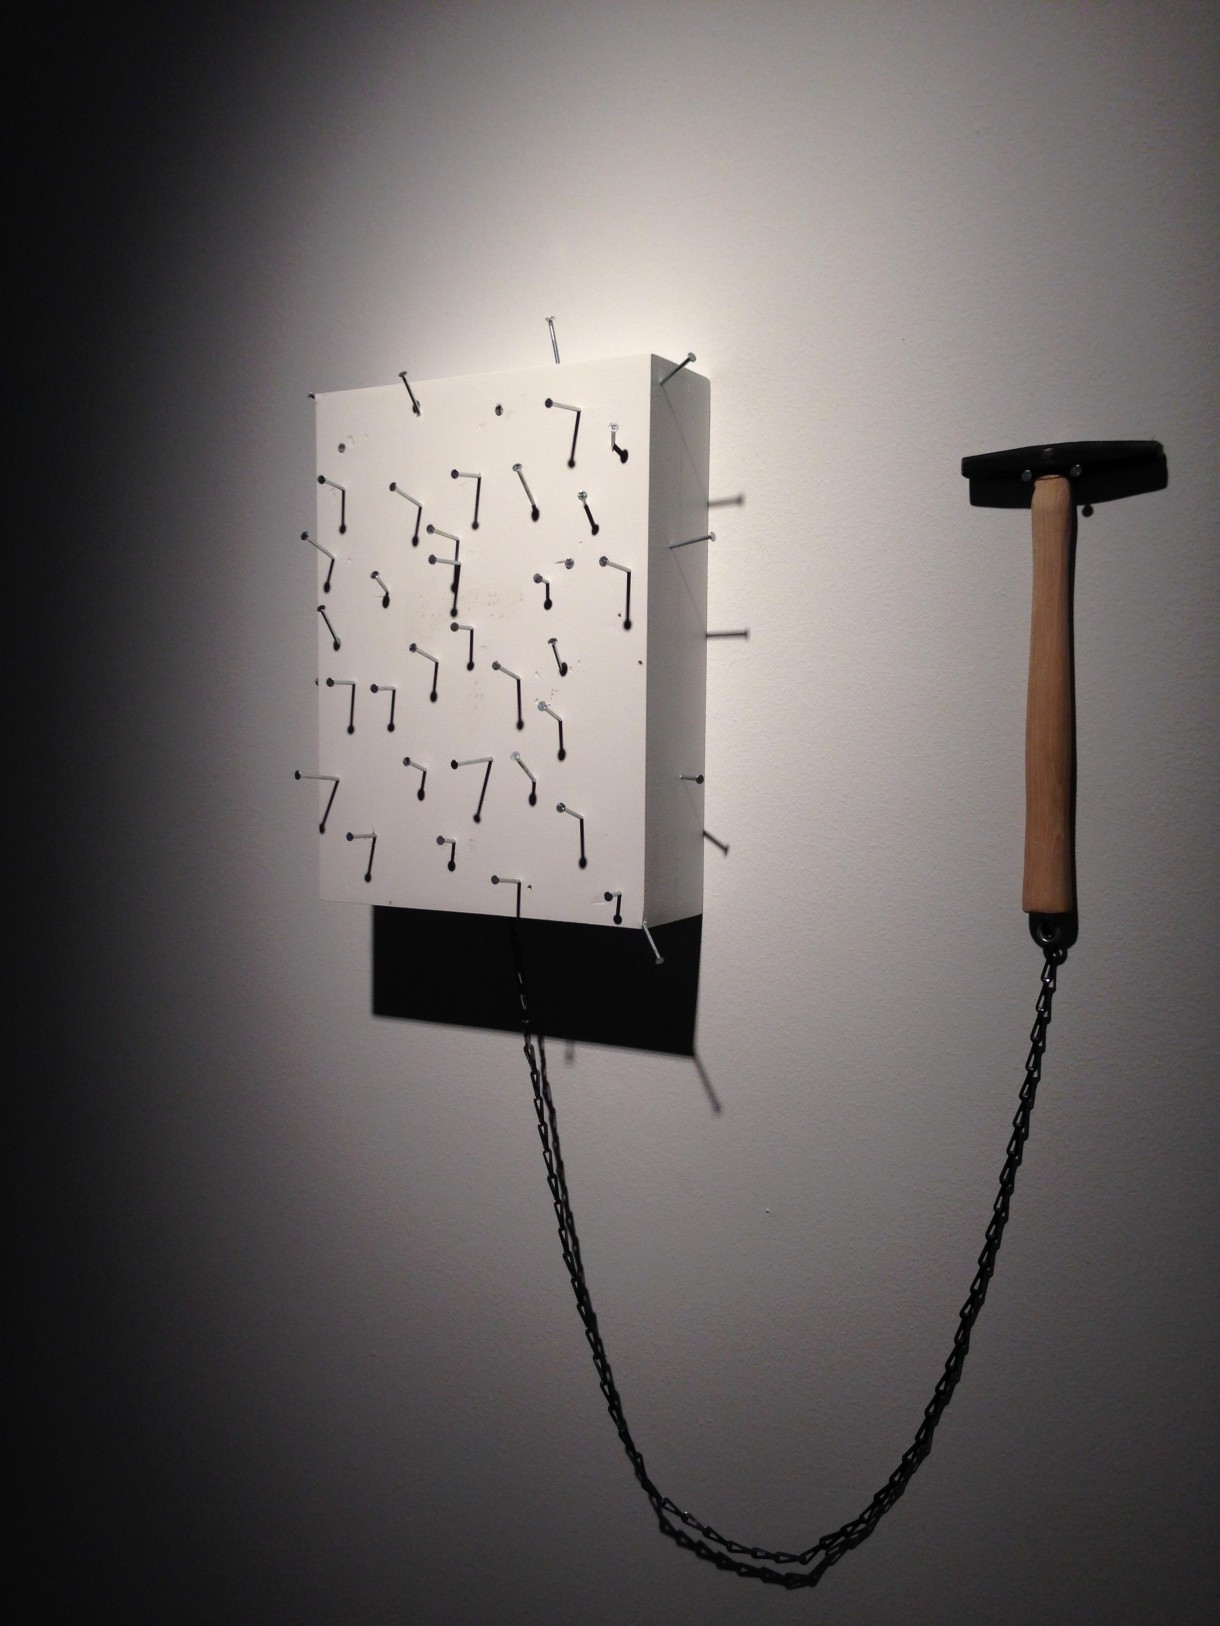 ONO 'Conceptual Objects' (1961-1967)